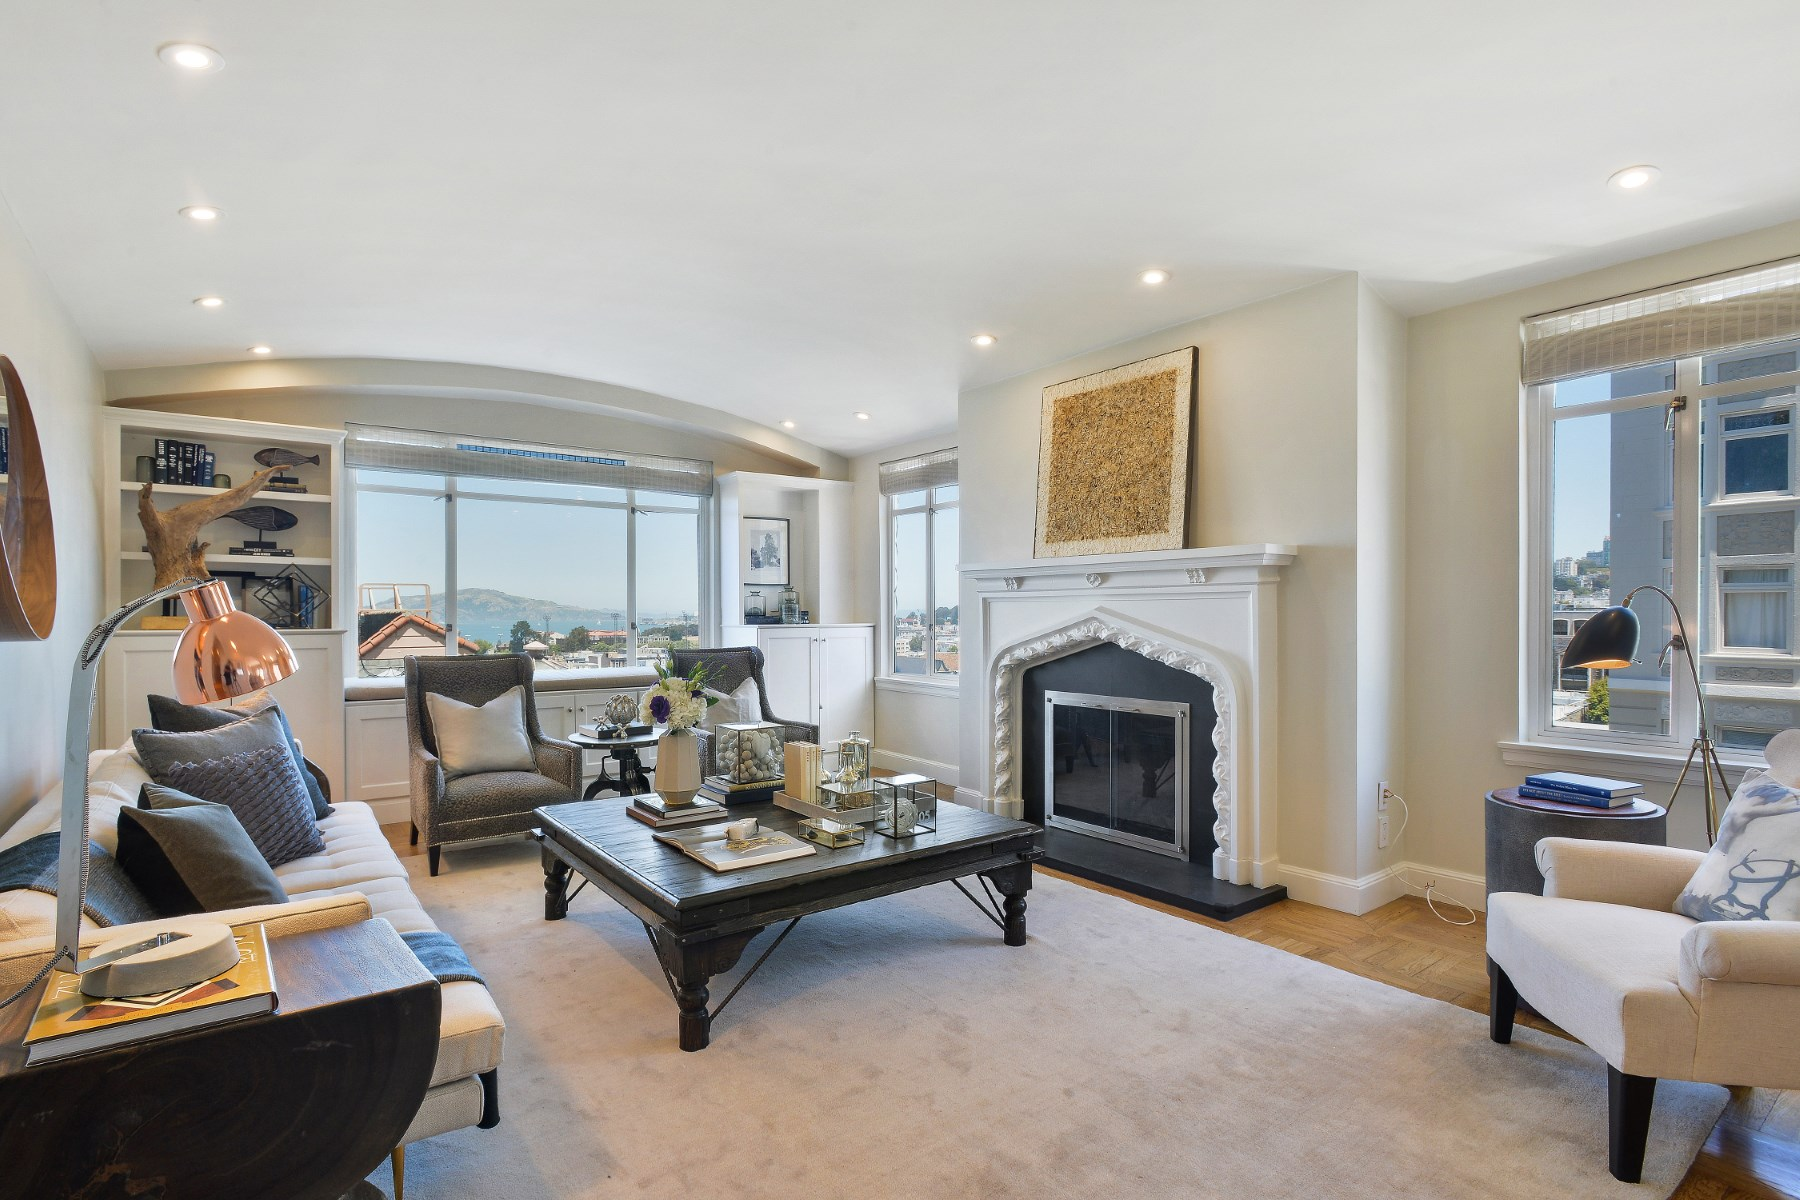 Co-op for Sale at Elegant Pacific Height Co-Op 2100 Green St Apt 204 Pacific Heights, San Francisco, California, 94123 United States